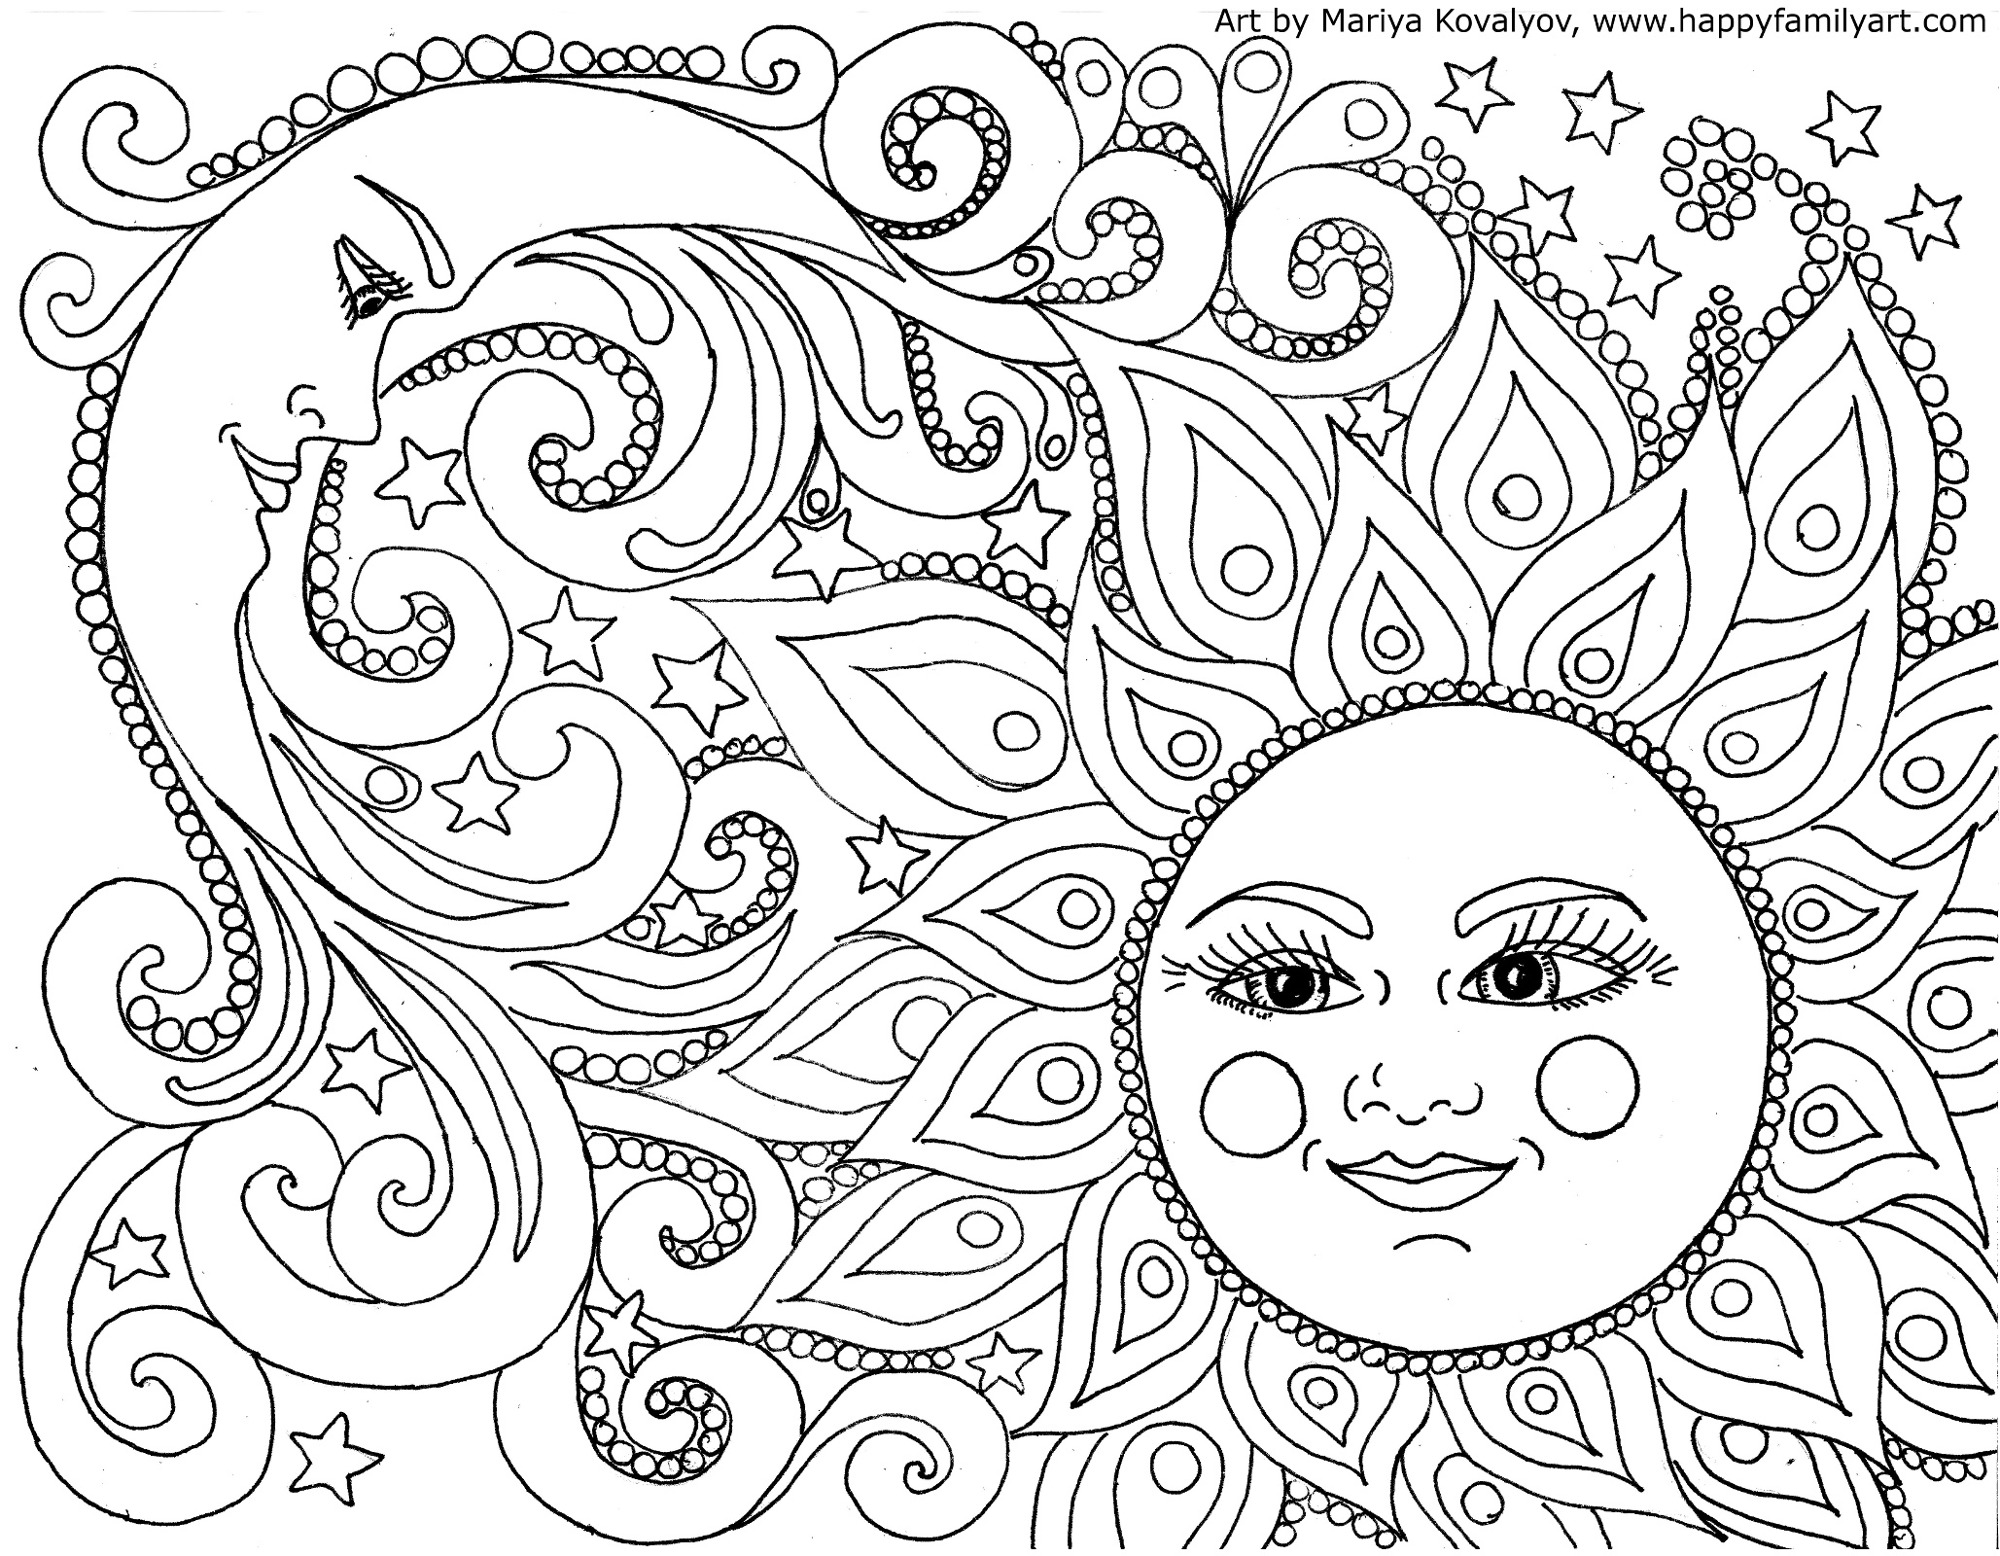 Coloring Pages Mesmerizing Happy Family Art  Original And Fun Coloring Pages Review